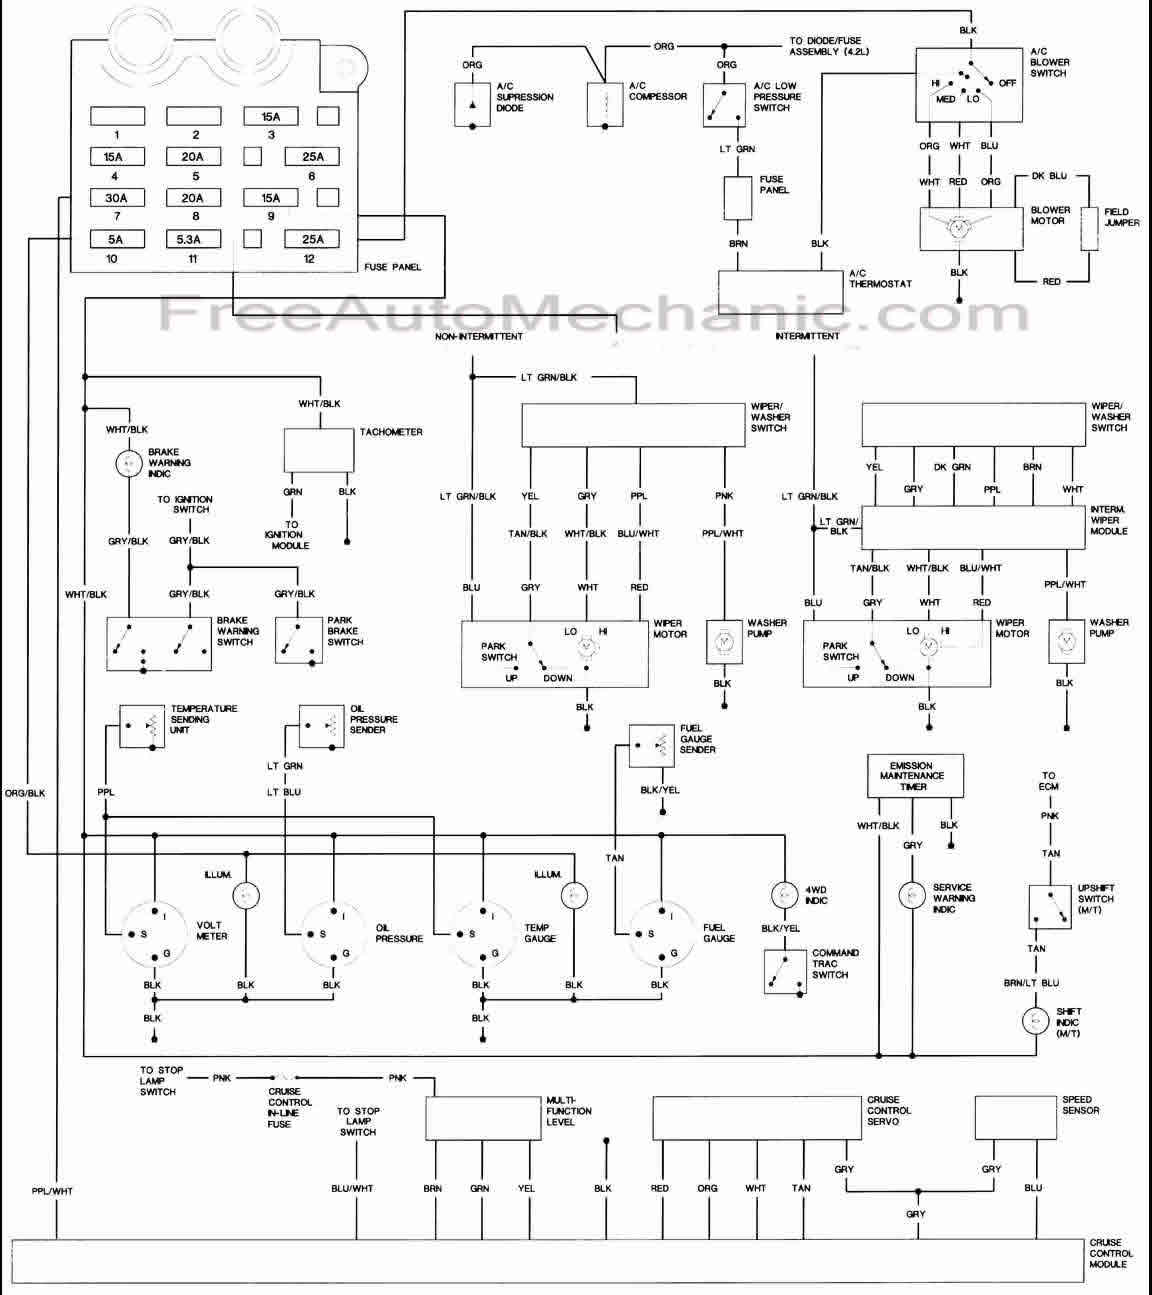 1987 Ford Radio Wiring Diagram Diagrams F 150 For Jeep Wrangler Body 1 Freeautomechanic F350 F150